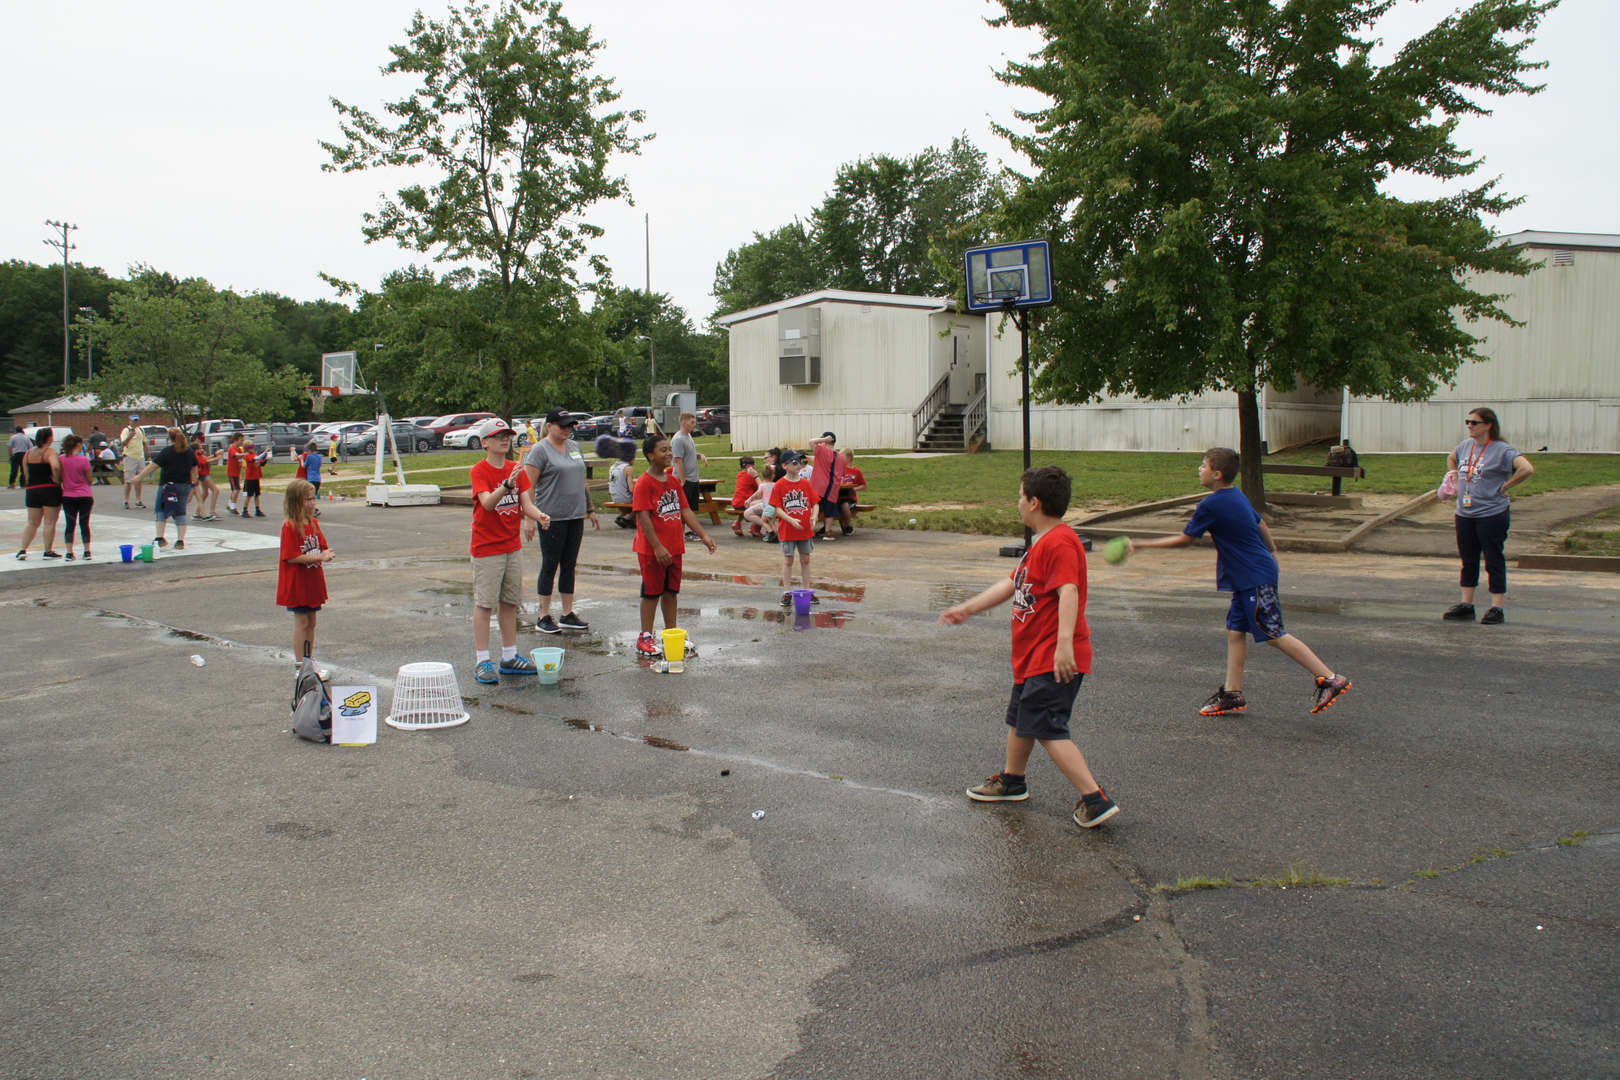 Pocahontas Elementary School Field Day - Students playing wet sponge game